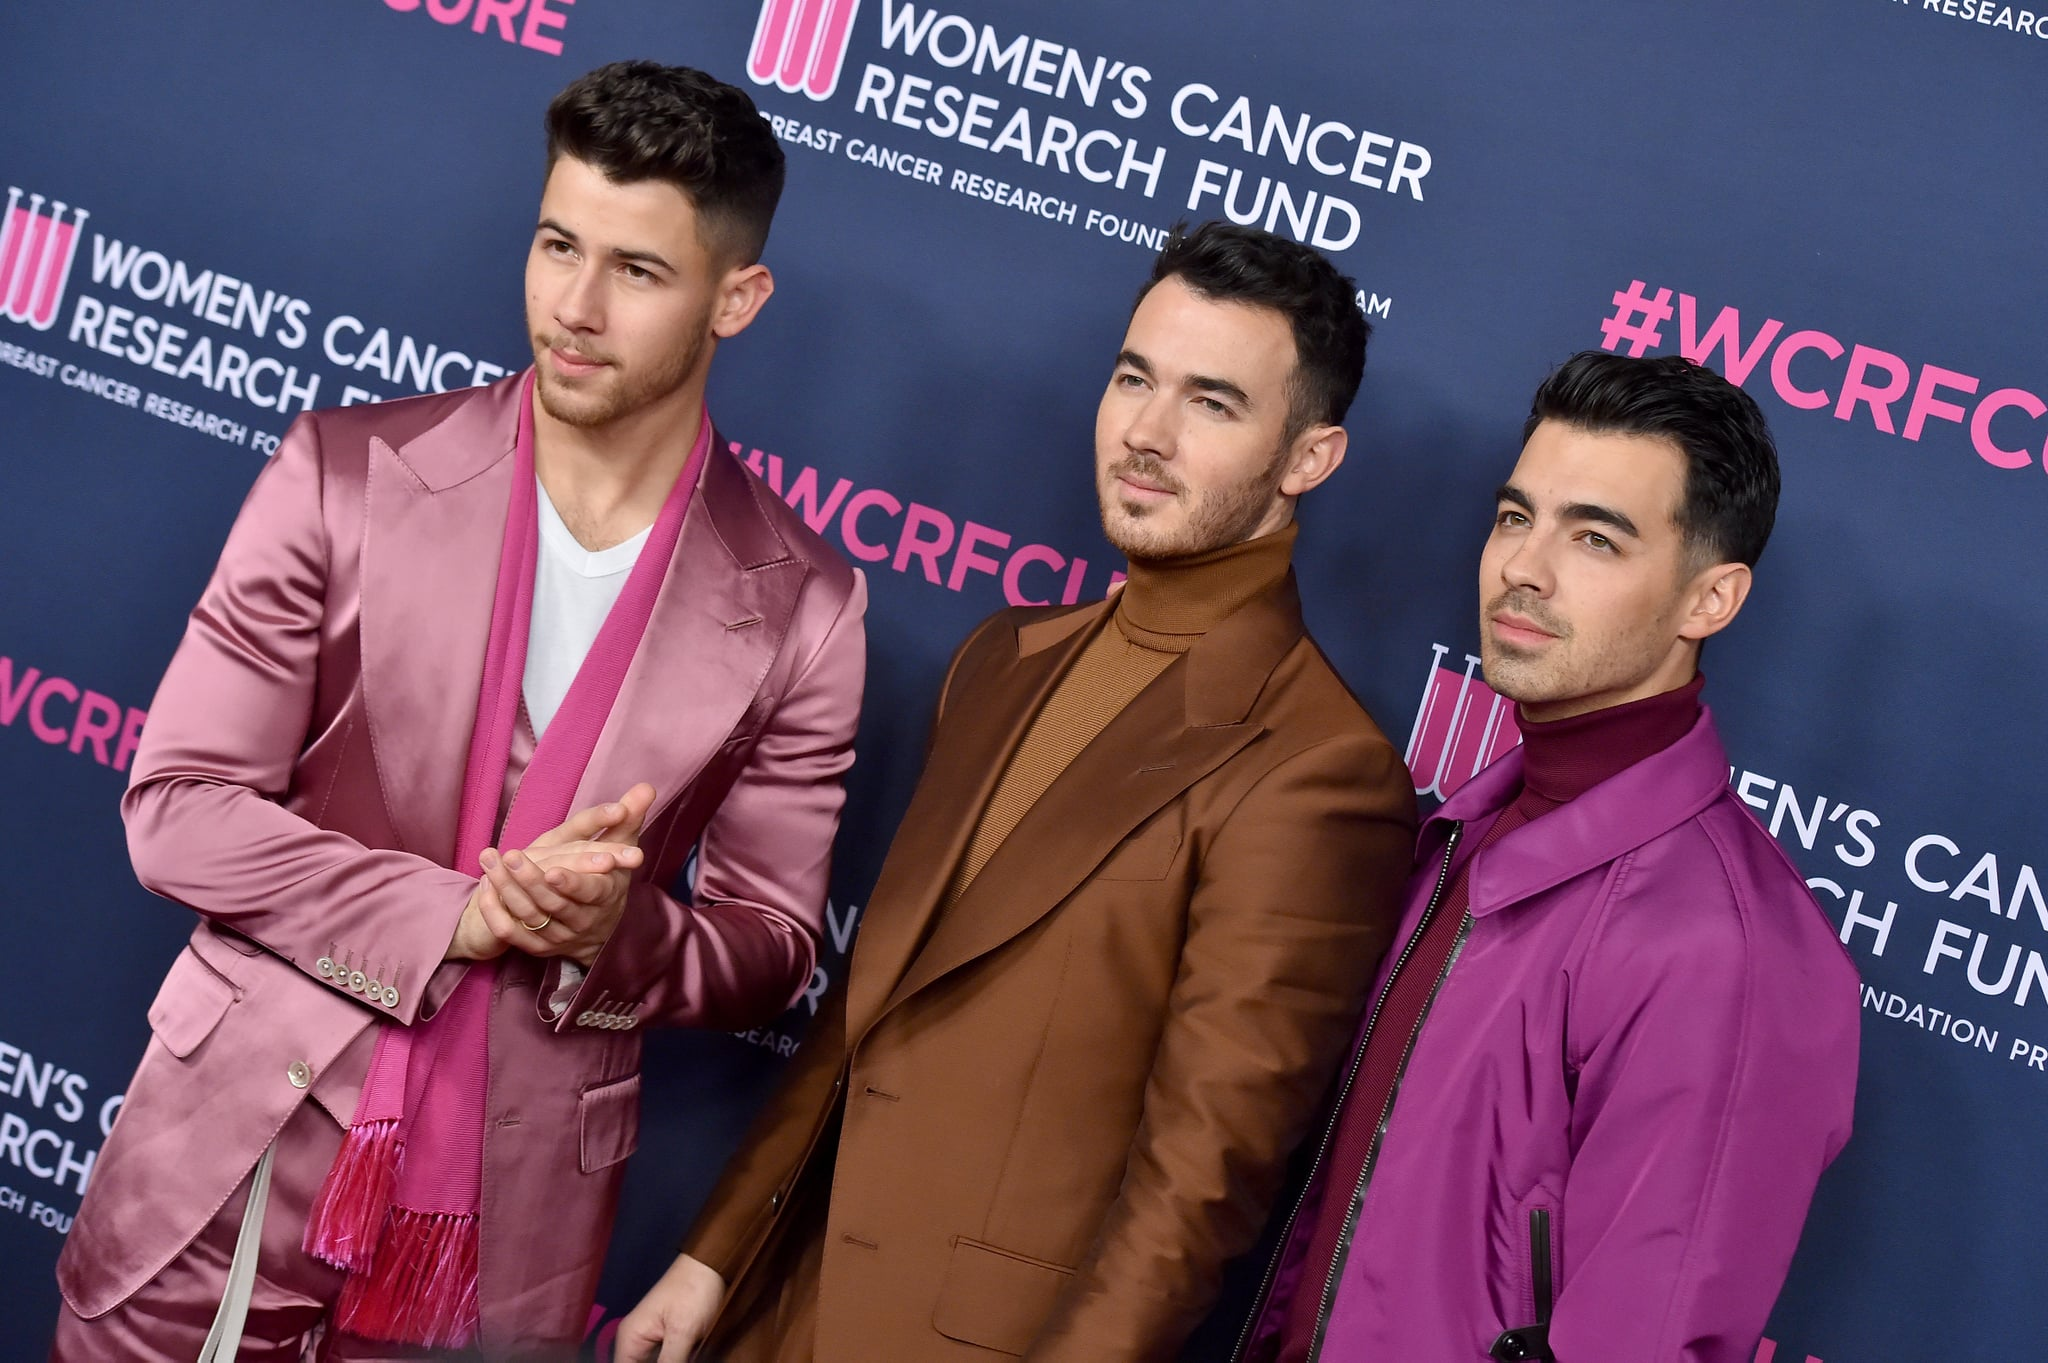 BEVERLY HILLS, CALIFORNIA - FEBRUARY 27: (L-R) Nick Jonas, Kevin Jonas, and Joe Jonas of Jonas Brothers attend The Women's Cancer Research Fund's An Unforgettable Evening 2020 at Beverly Wilshire, A Four Seasons Hotel on February 27, 2020 in Beverly Hills, California. (Photo by Axelle/Bauer-Griffin/FilmMagic)